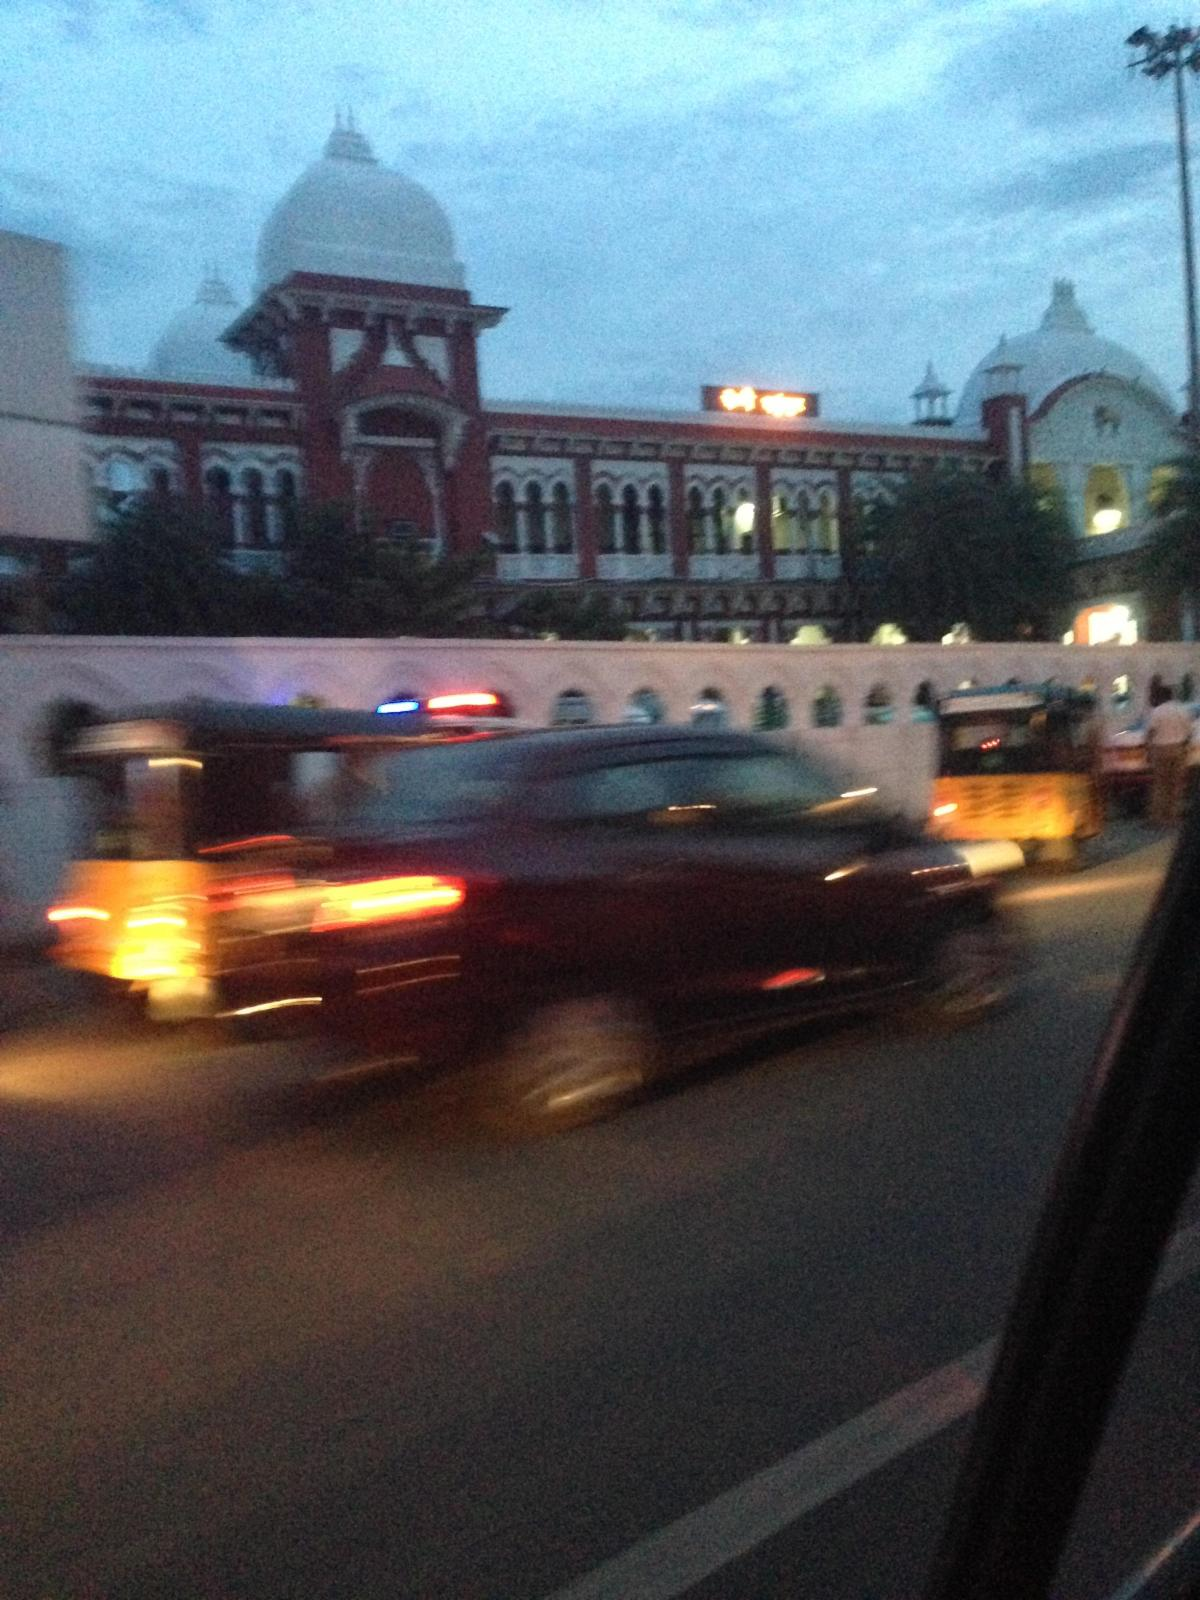 Chennai Tourism: View of India Traffic from the Front of the Bus Part II